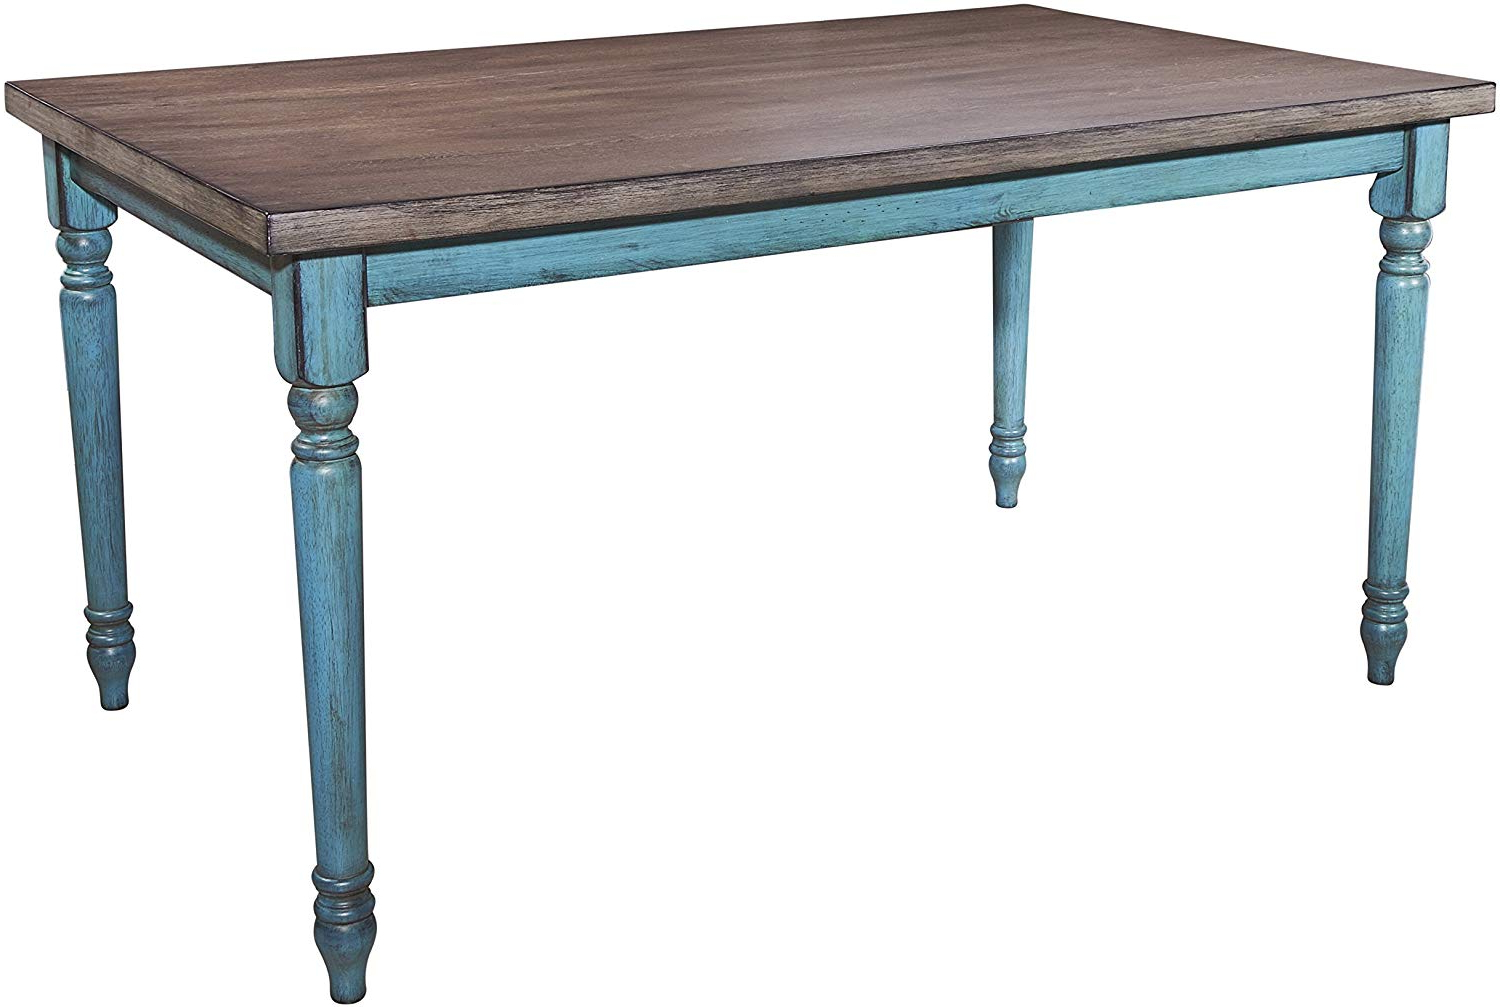 Recent Powell Furniture Willow Dining Table, Multicolor in Distressed Walnut And Black Finish Wood Modern Country Dining Tables